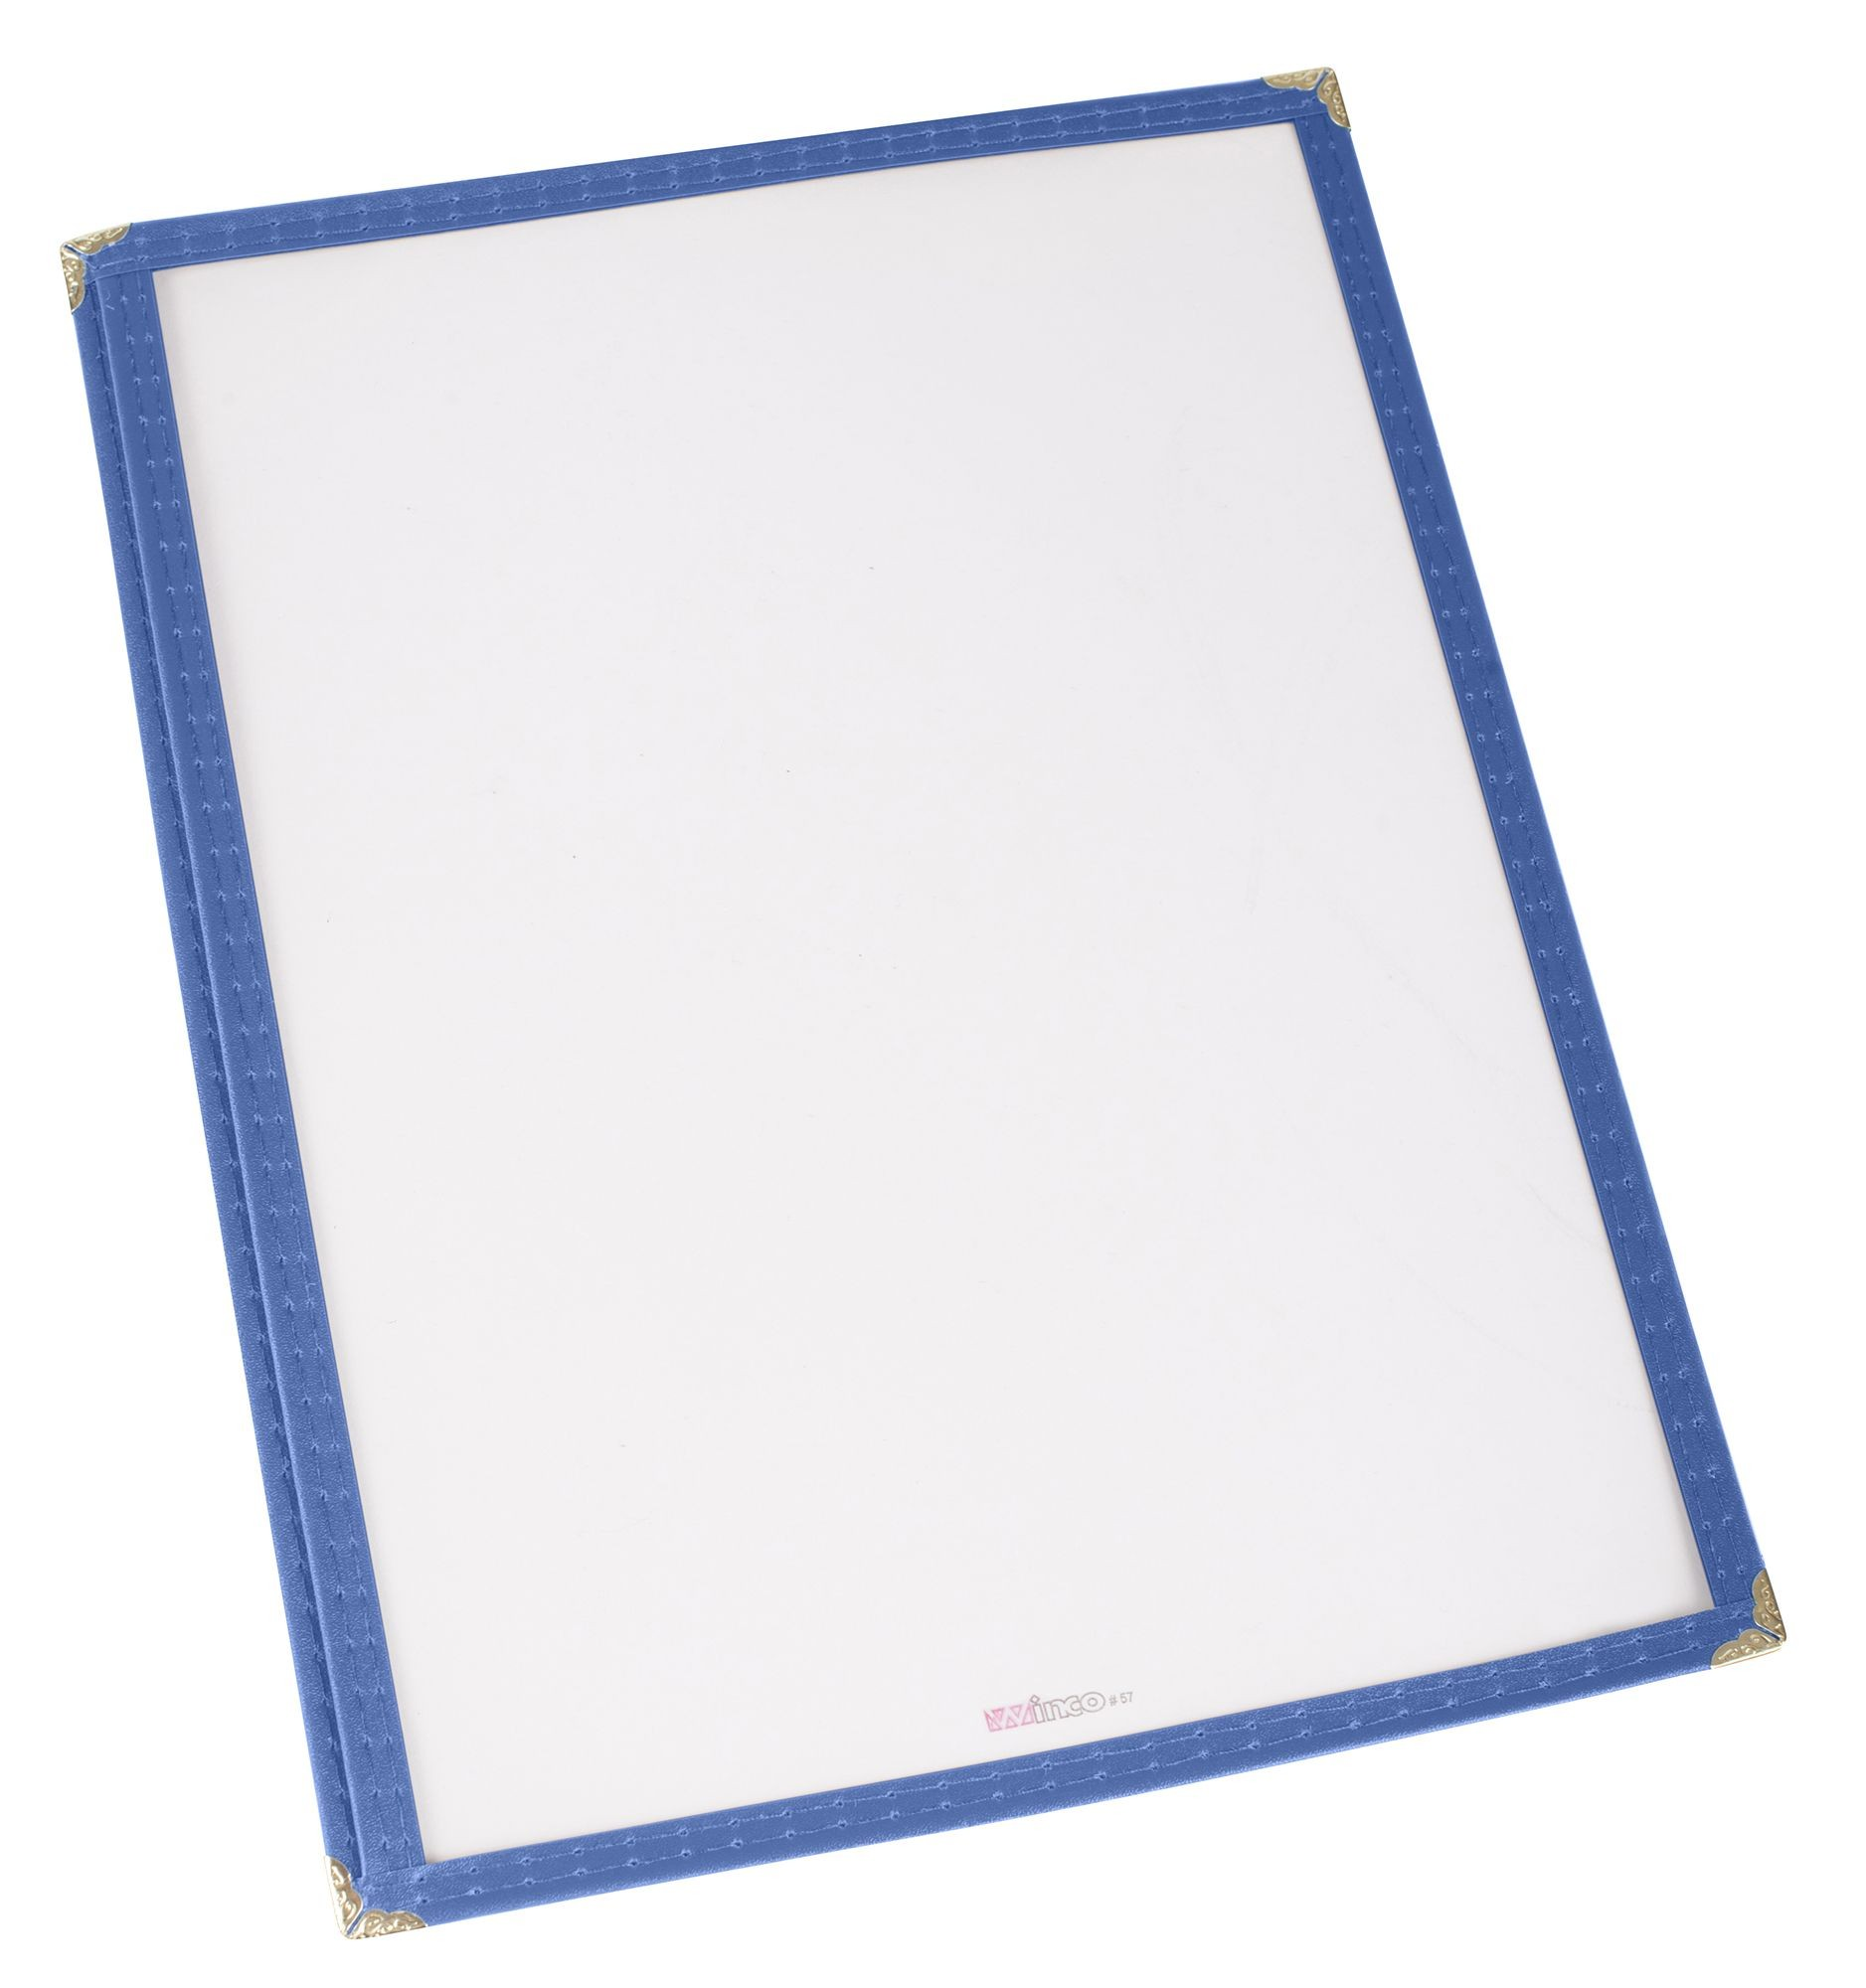 Single Menu Cover (2 Total Pages) - Holds 8.5